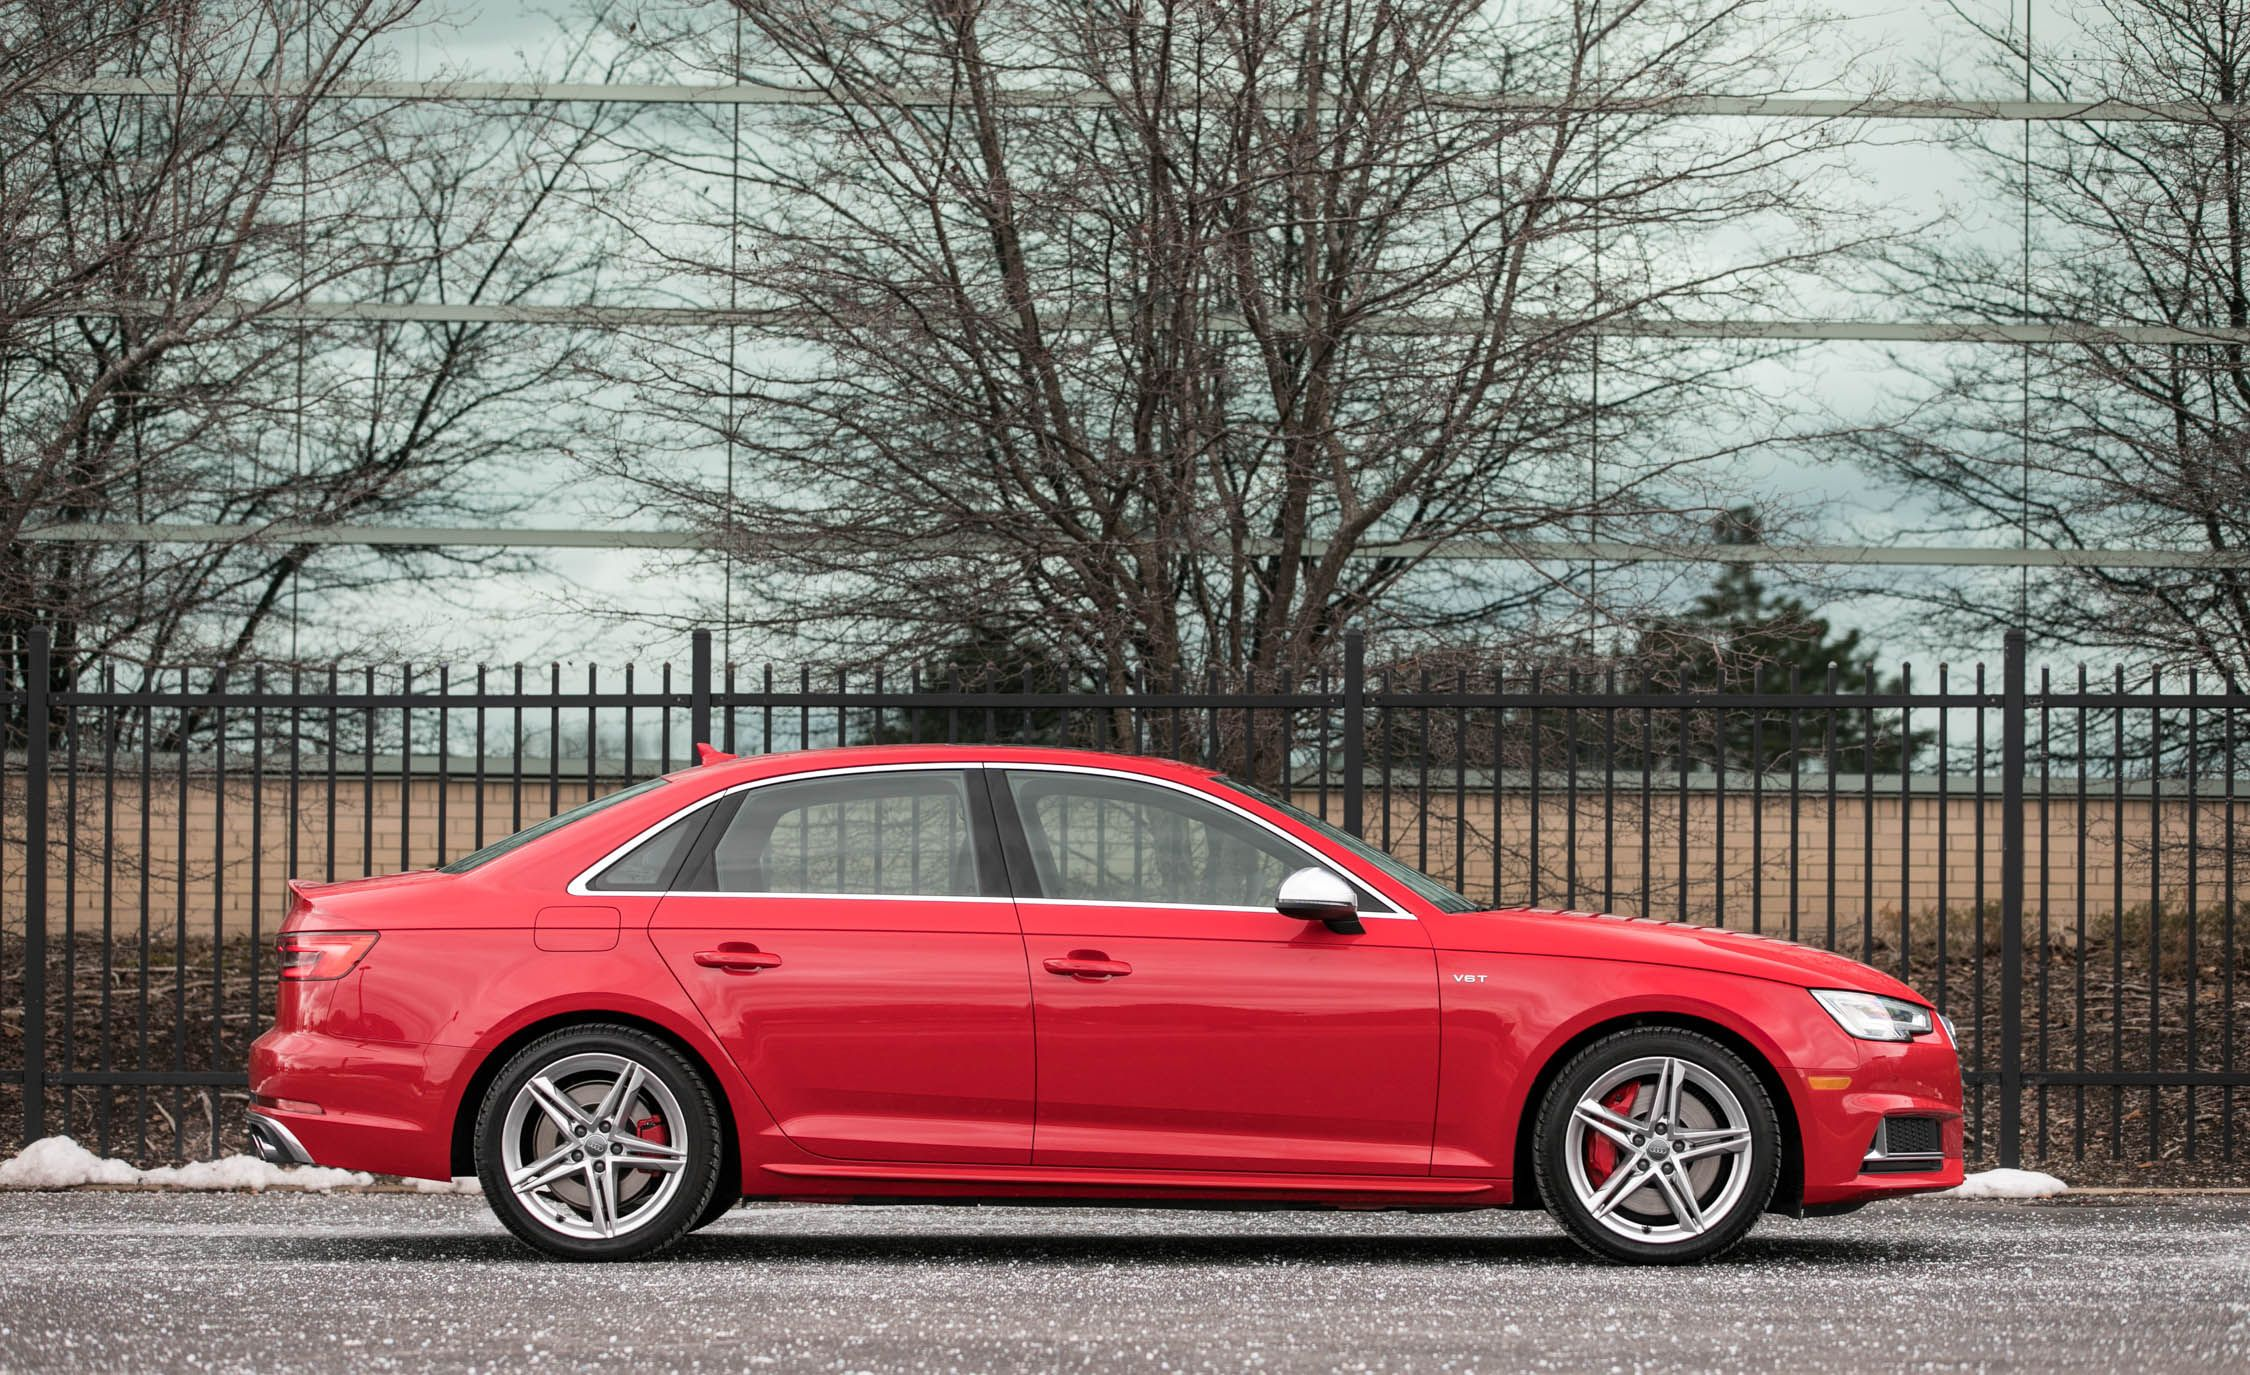 Audi S4 Reviews Audi S4 Price s and Specs